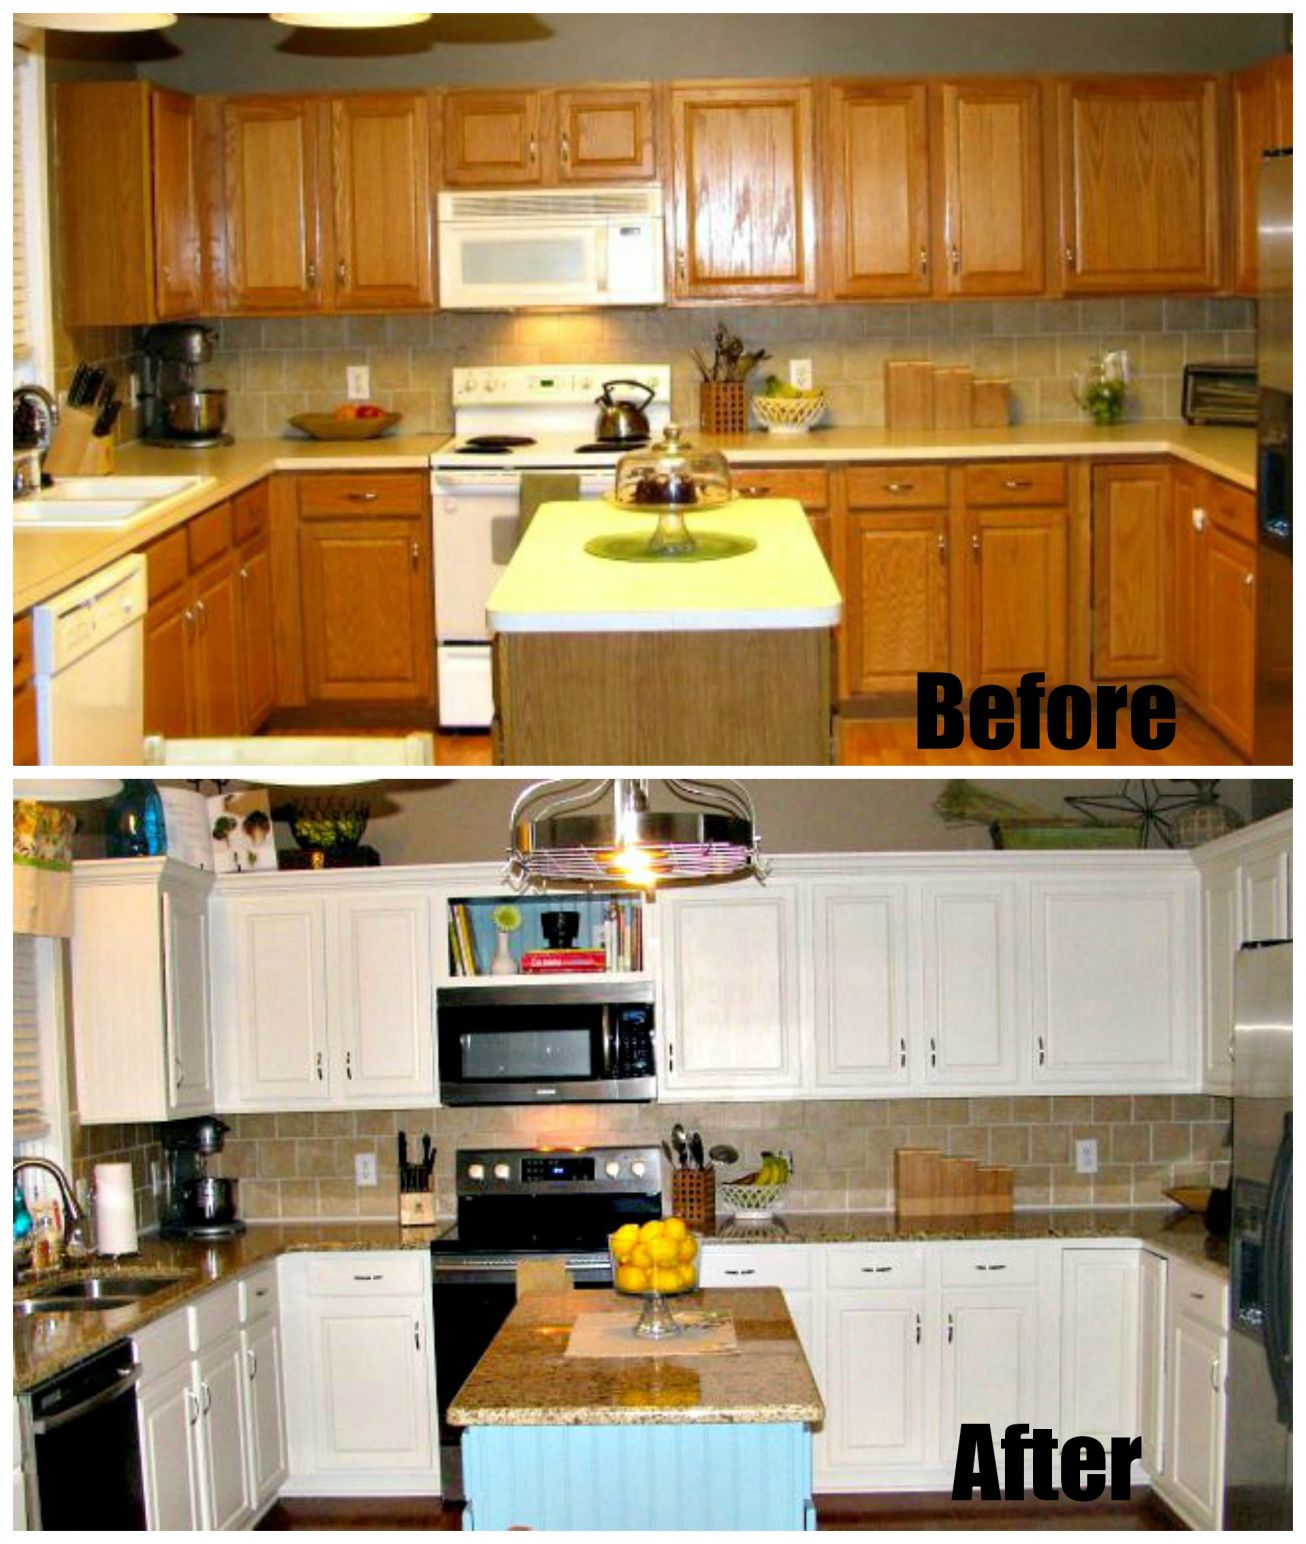 100 How To Remodel Kitchen Cheap  Kitchen Trash Can Ideas Check Awesome Cheap Kitchen Remodel 2018